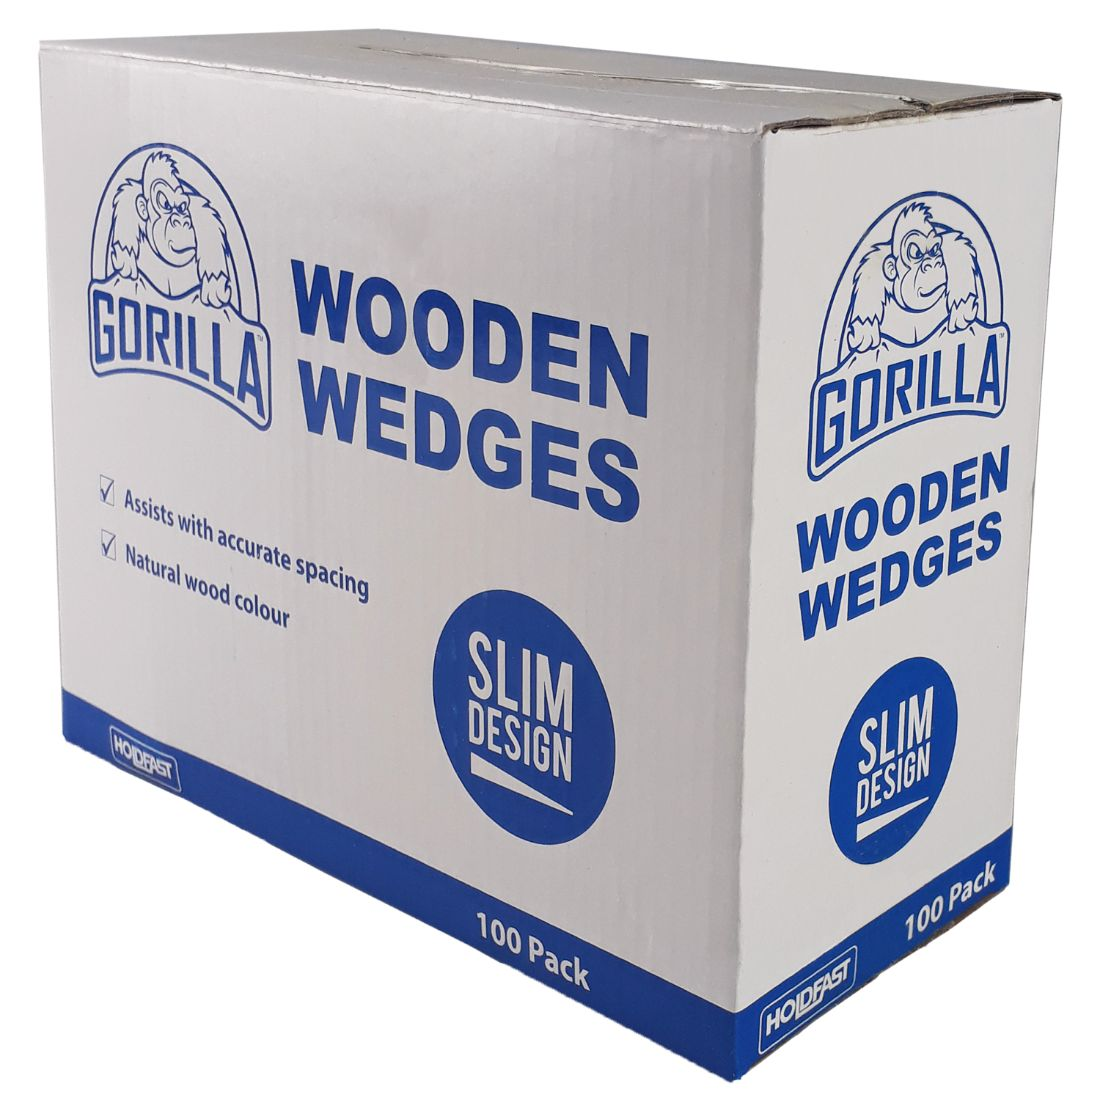 Wooden Wedge 100 Pack 11508